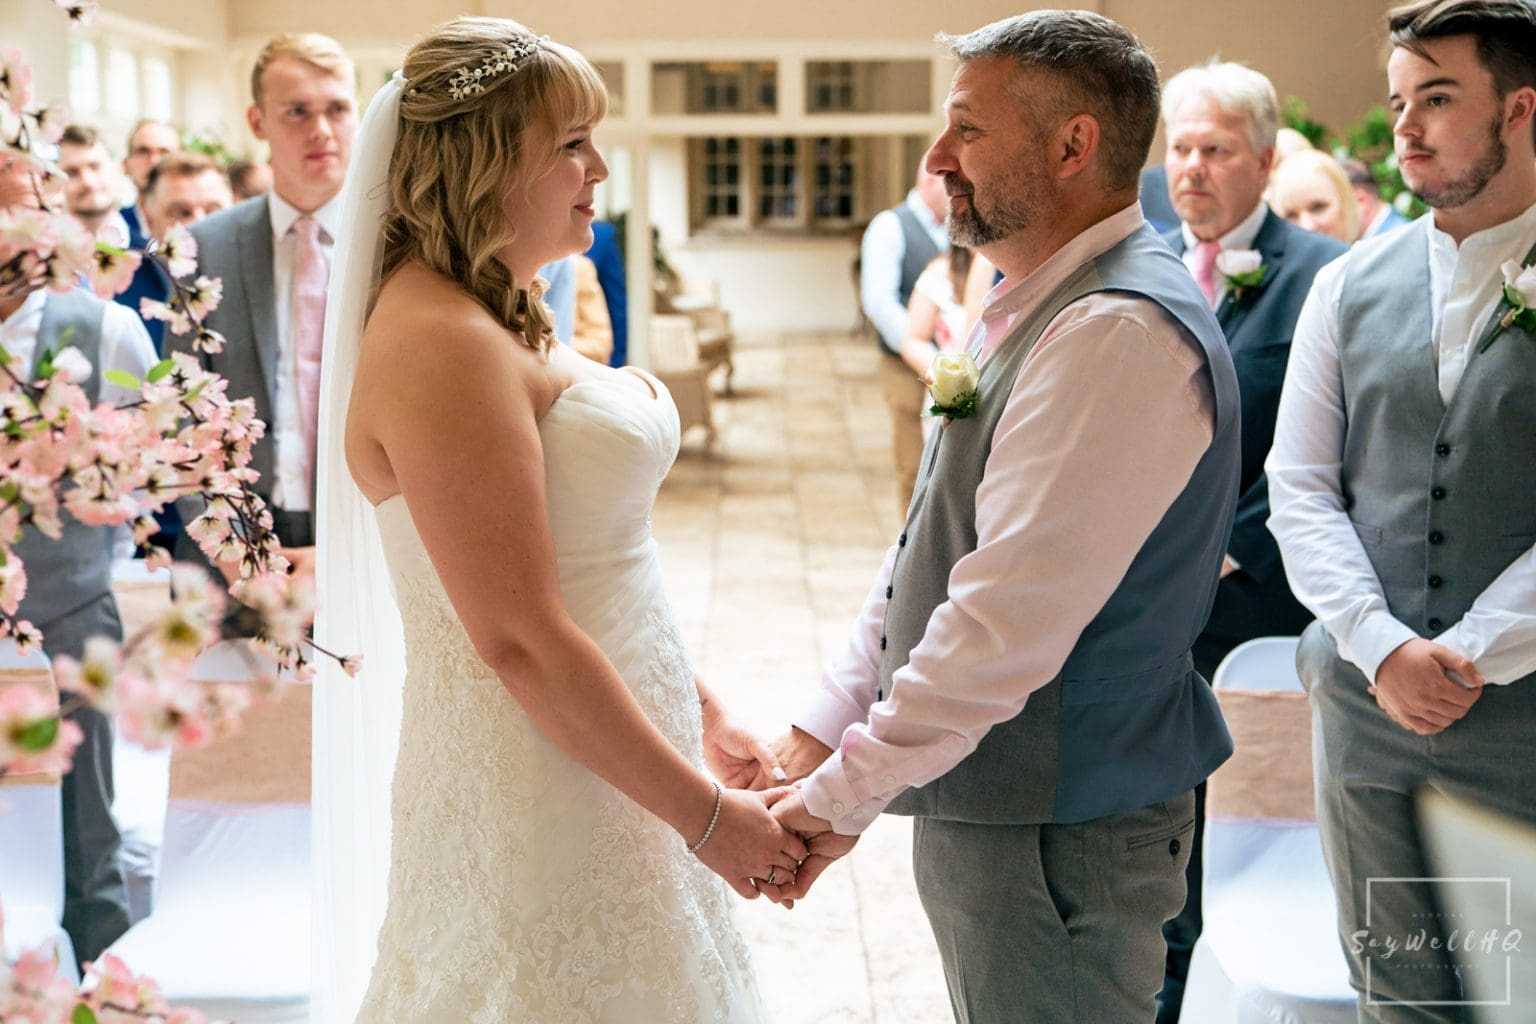 Woodborough Hall Wedding Photography + wedding ceremony bride and groom looking livingly at each other